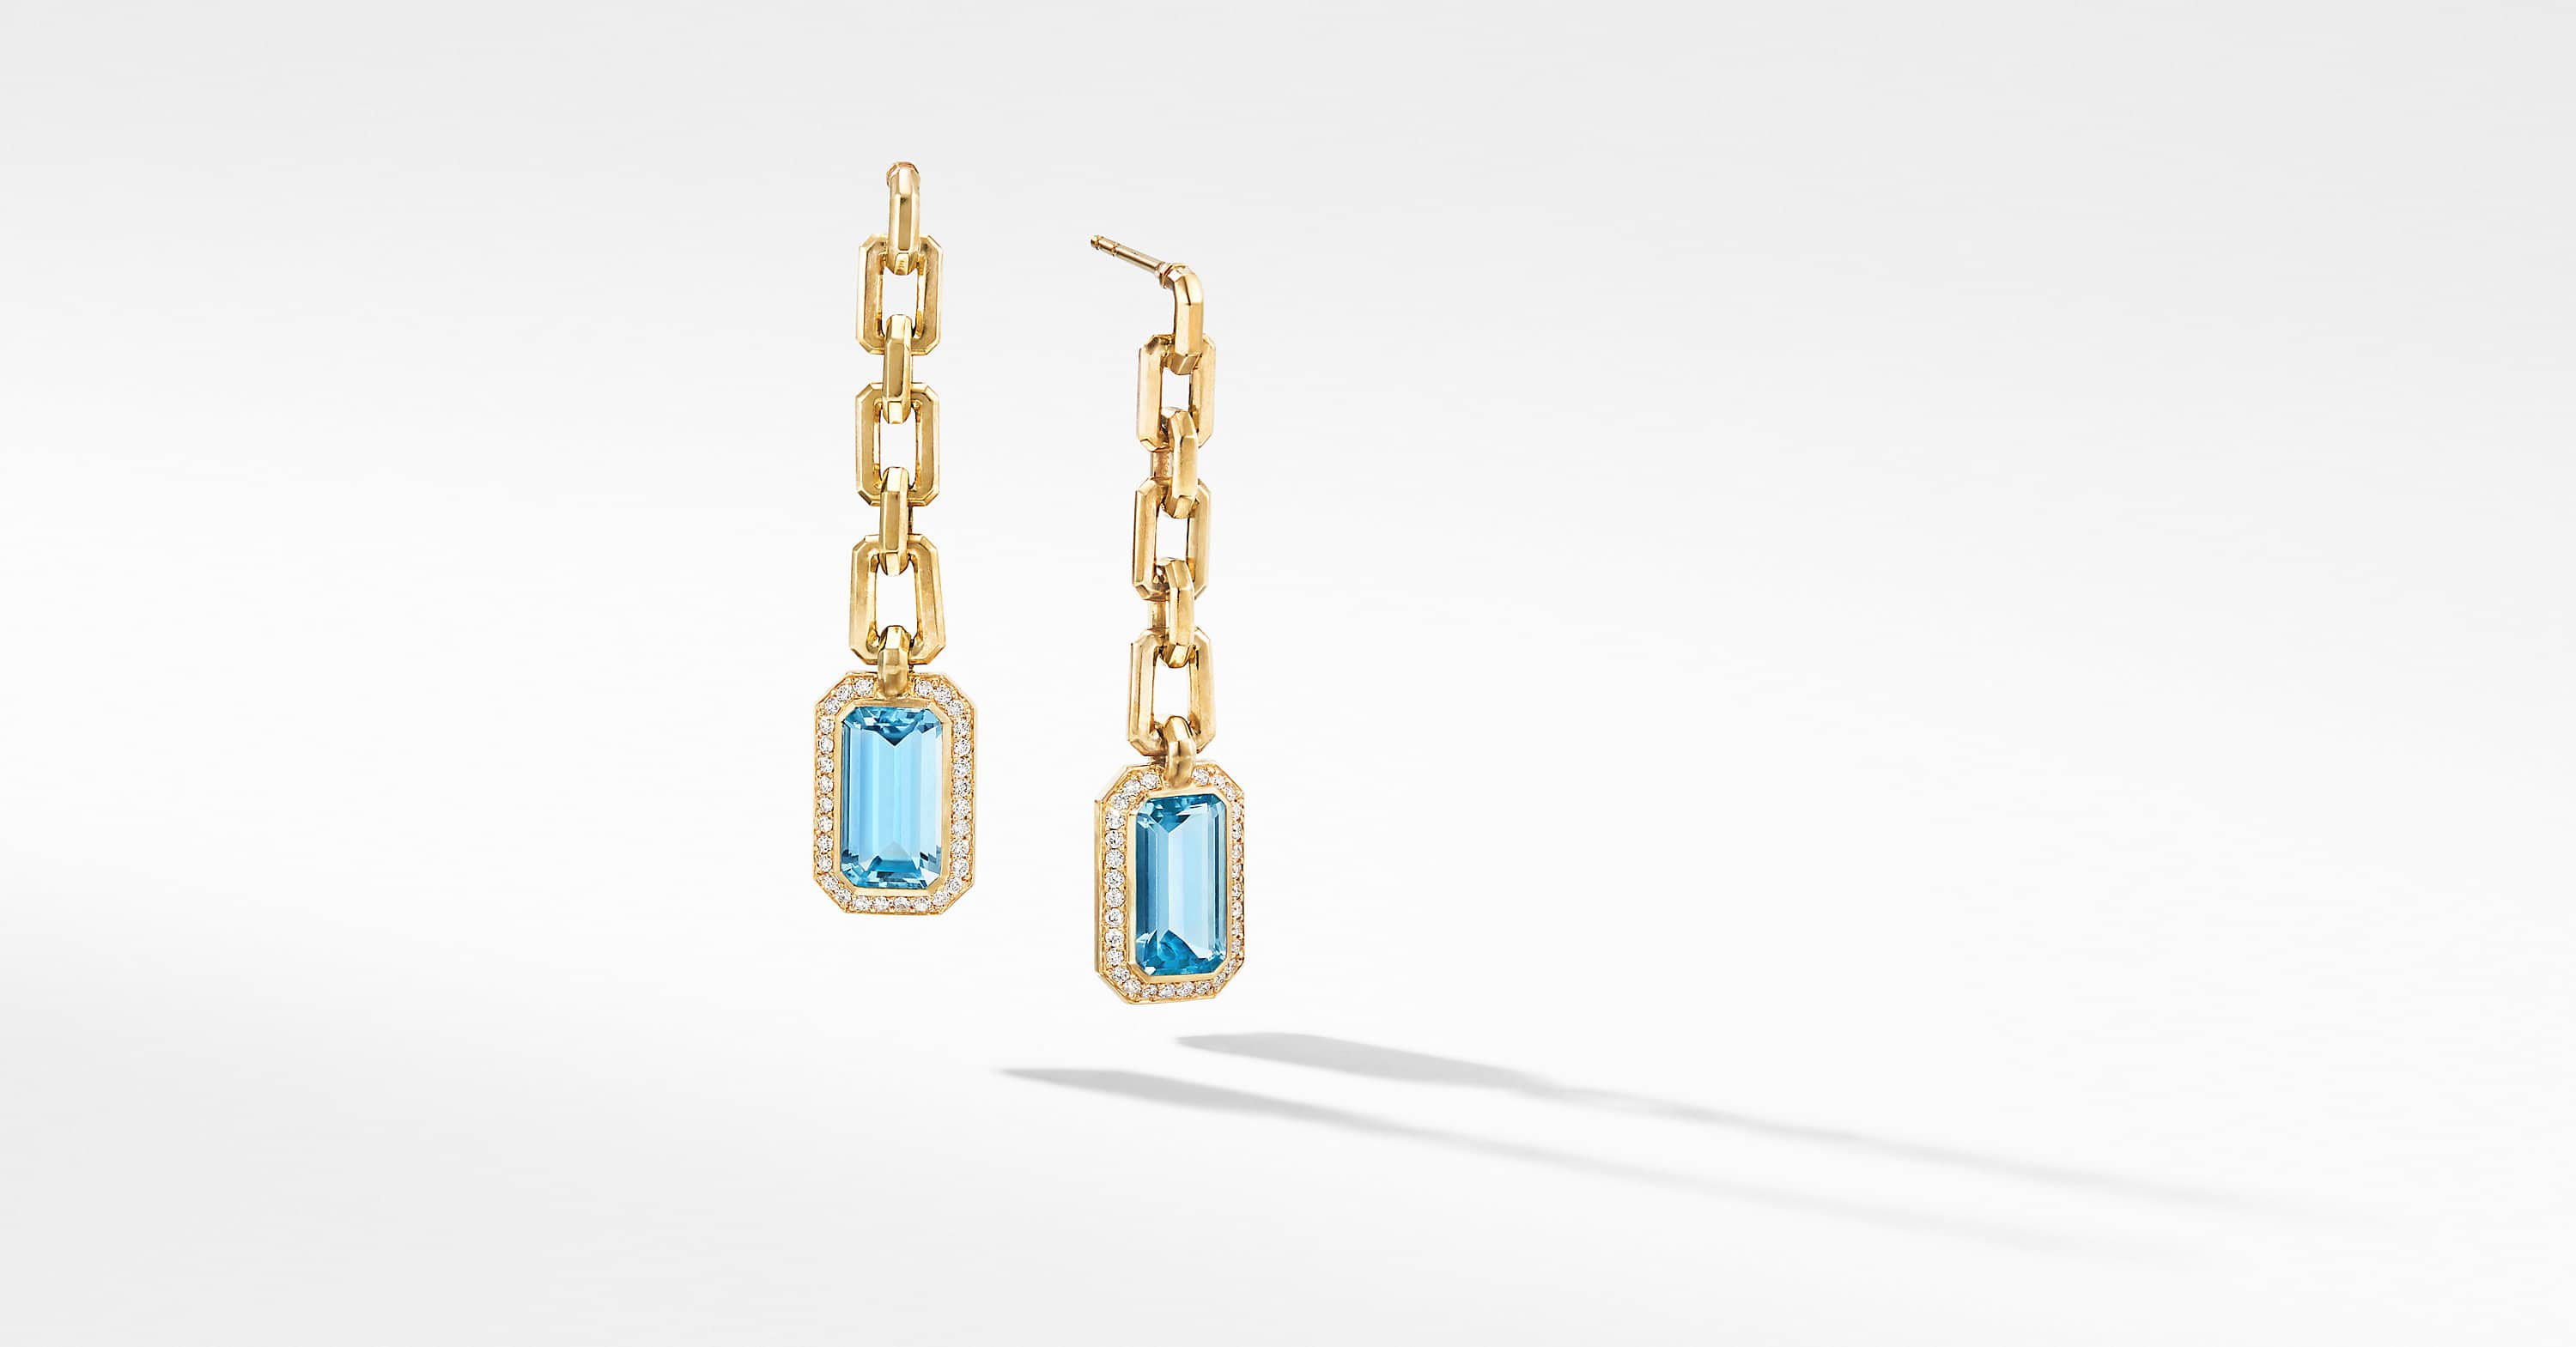 Novella Chain Drop Earrings in 18K Yellow Gold with Diamonds